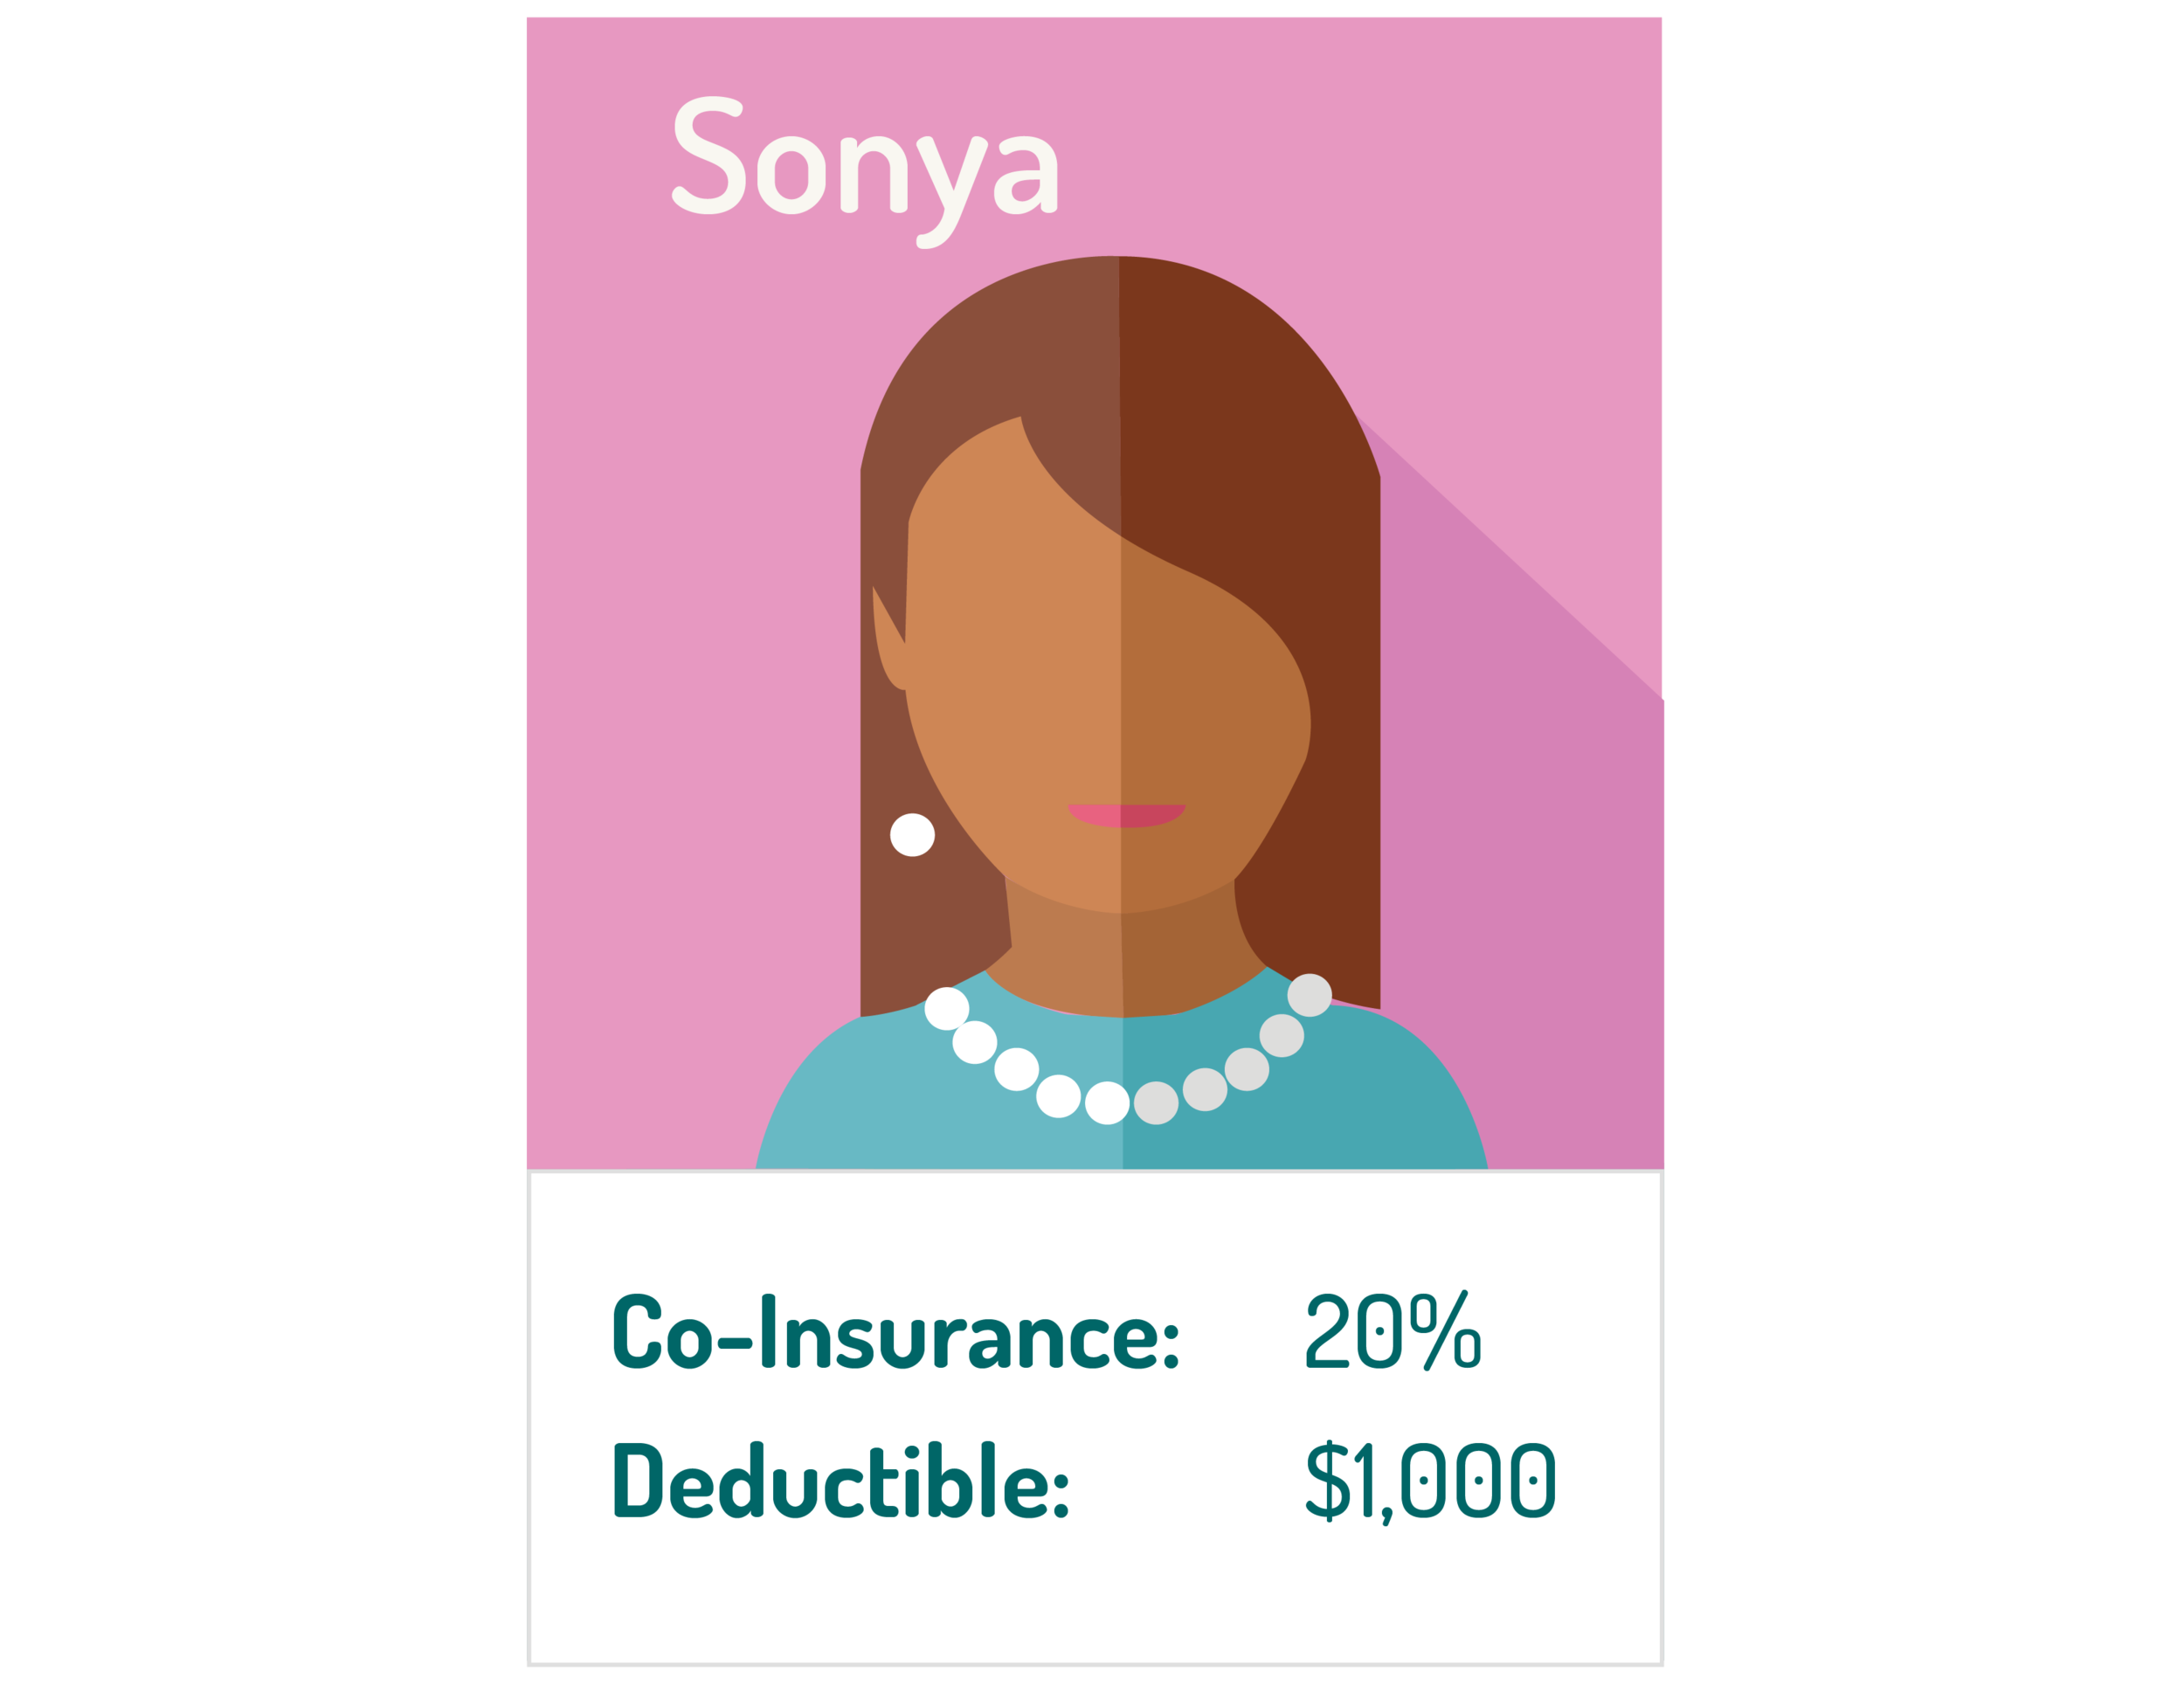 graphic of the woman named Sonya with her 20% co-insurance example under her image